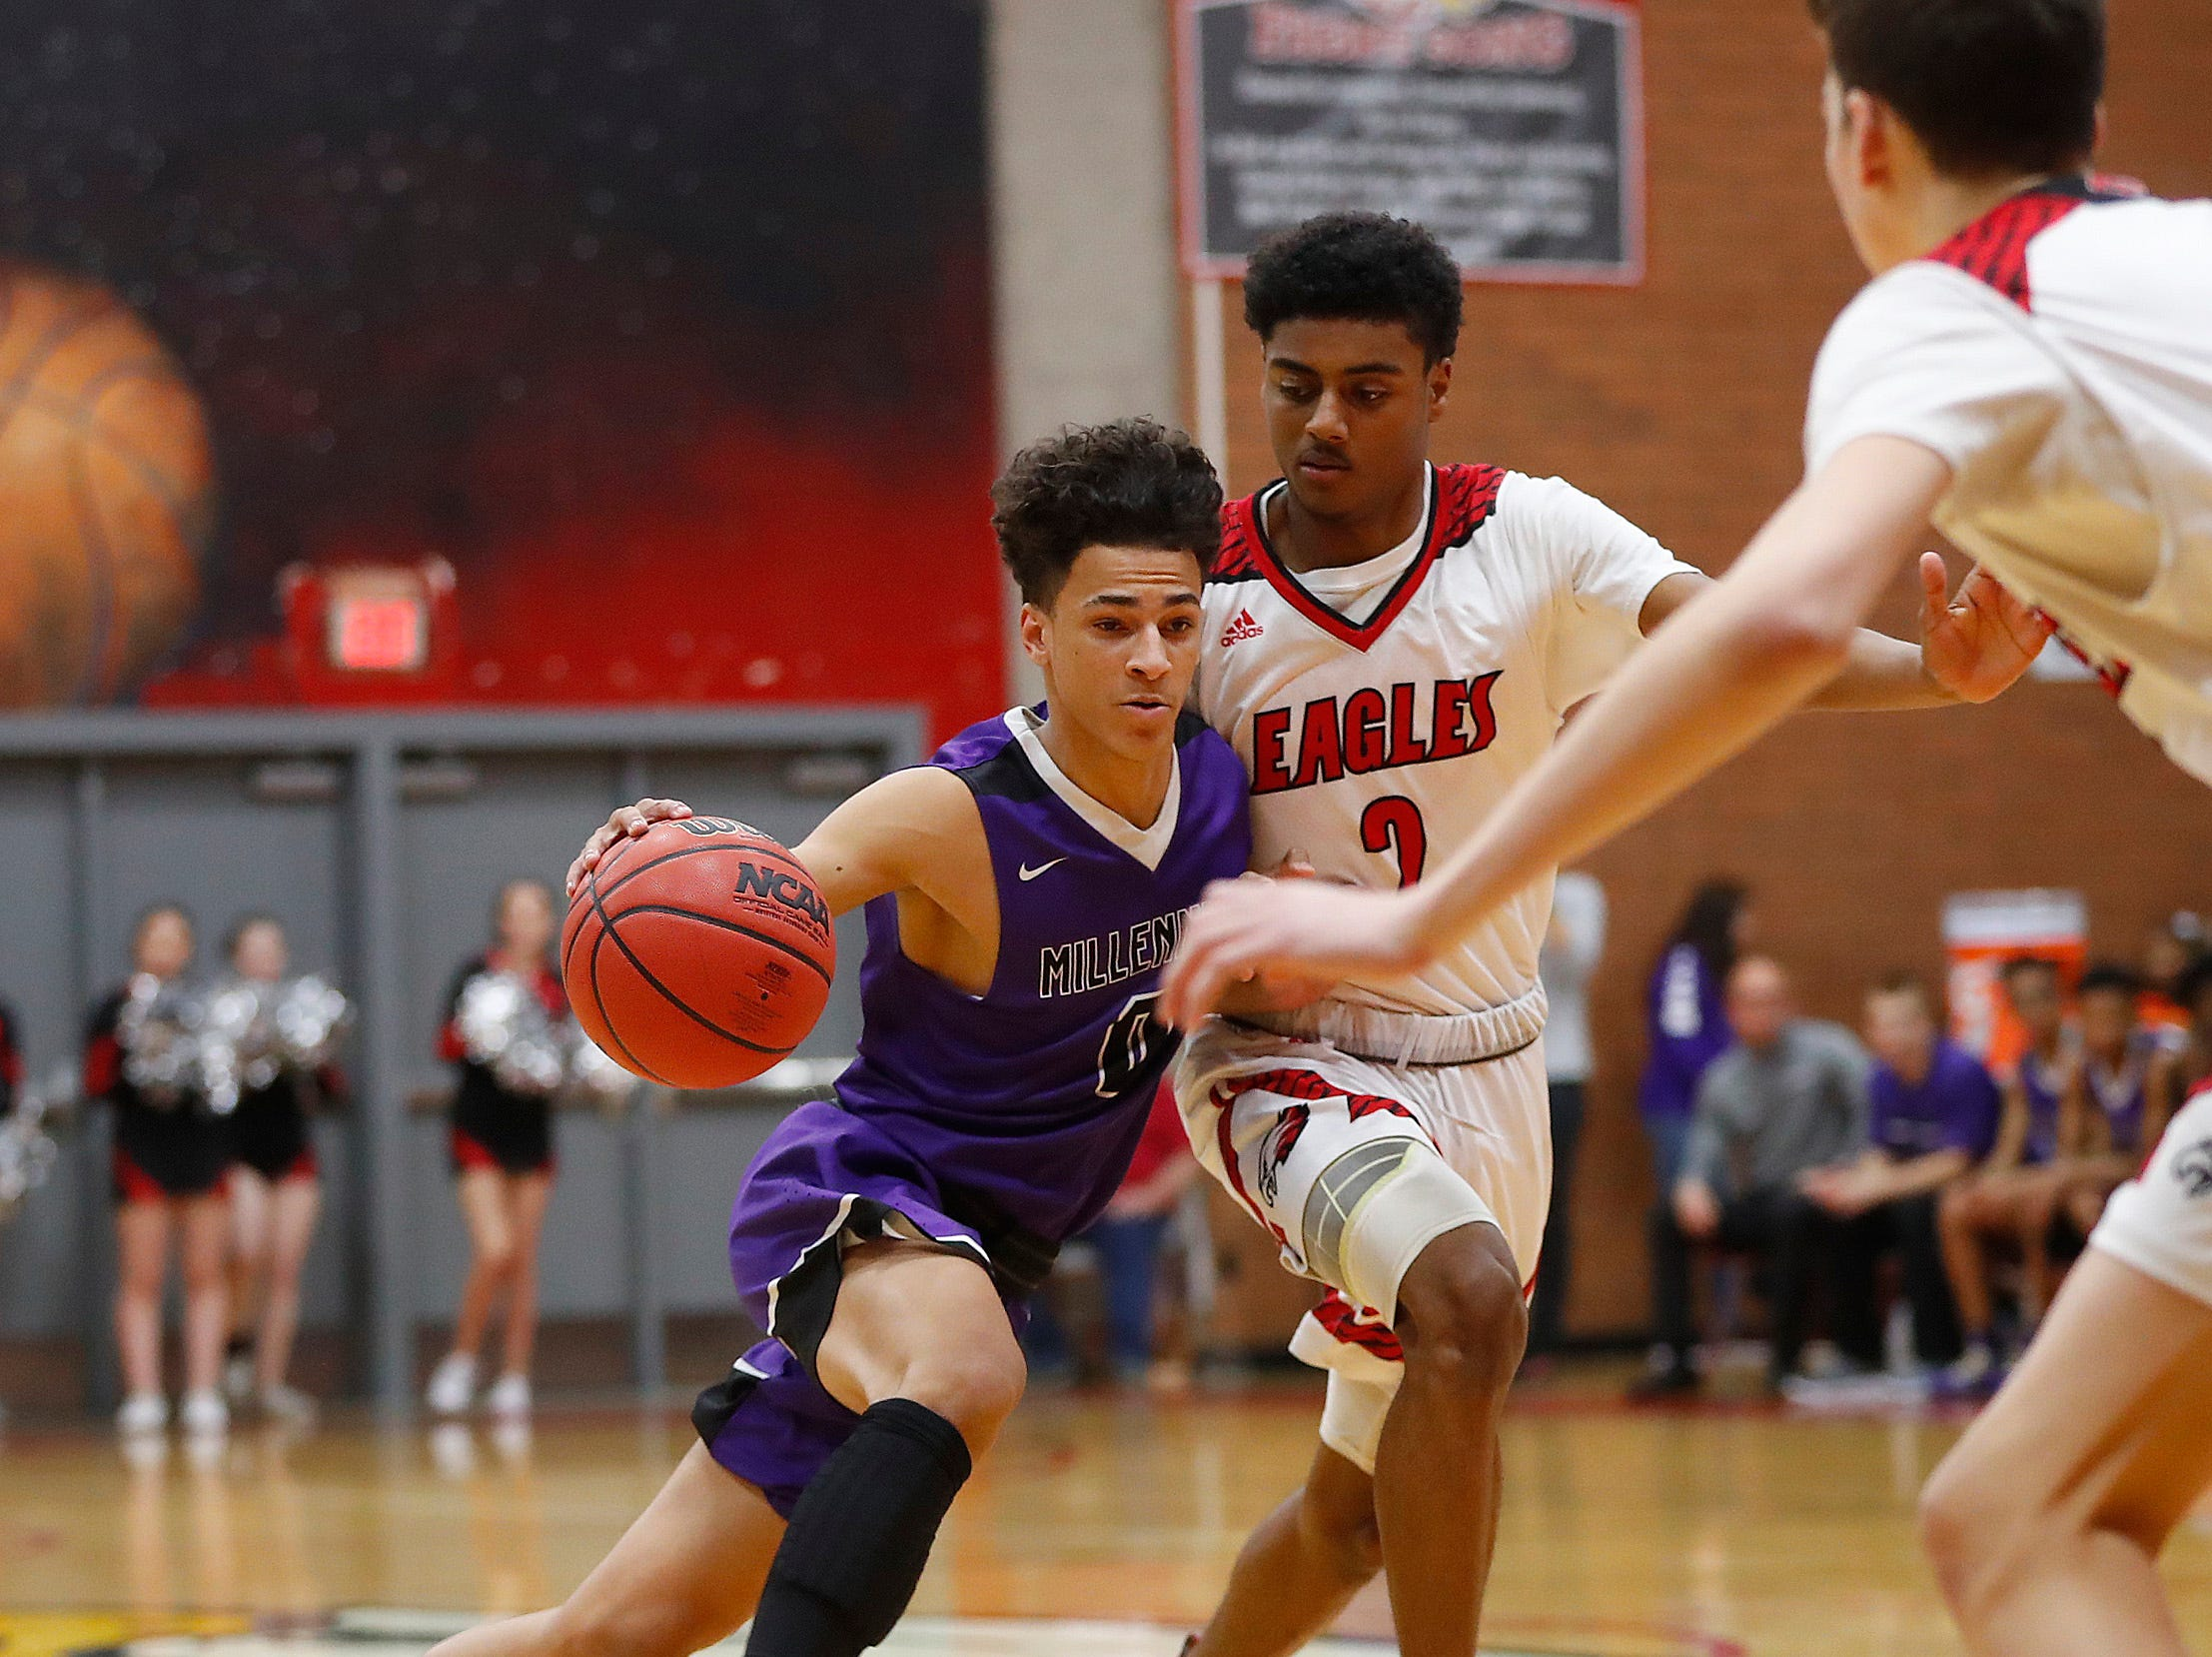 Millennium's Justus Jackson (0) drives on Ironwood's Dominic Gonzalez (2) during the first half of the 5A state quarterfinal game at Ironwood High School in Glendale, Ariz. on February 15, 2019.